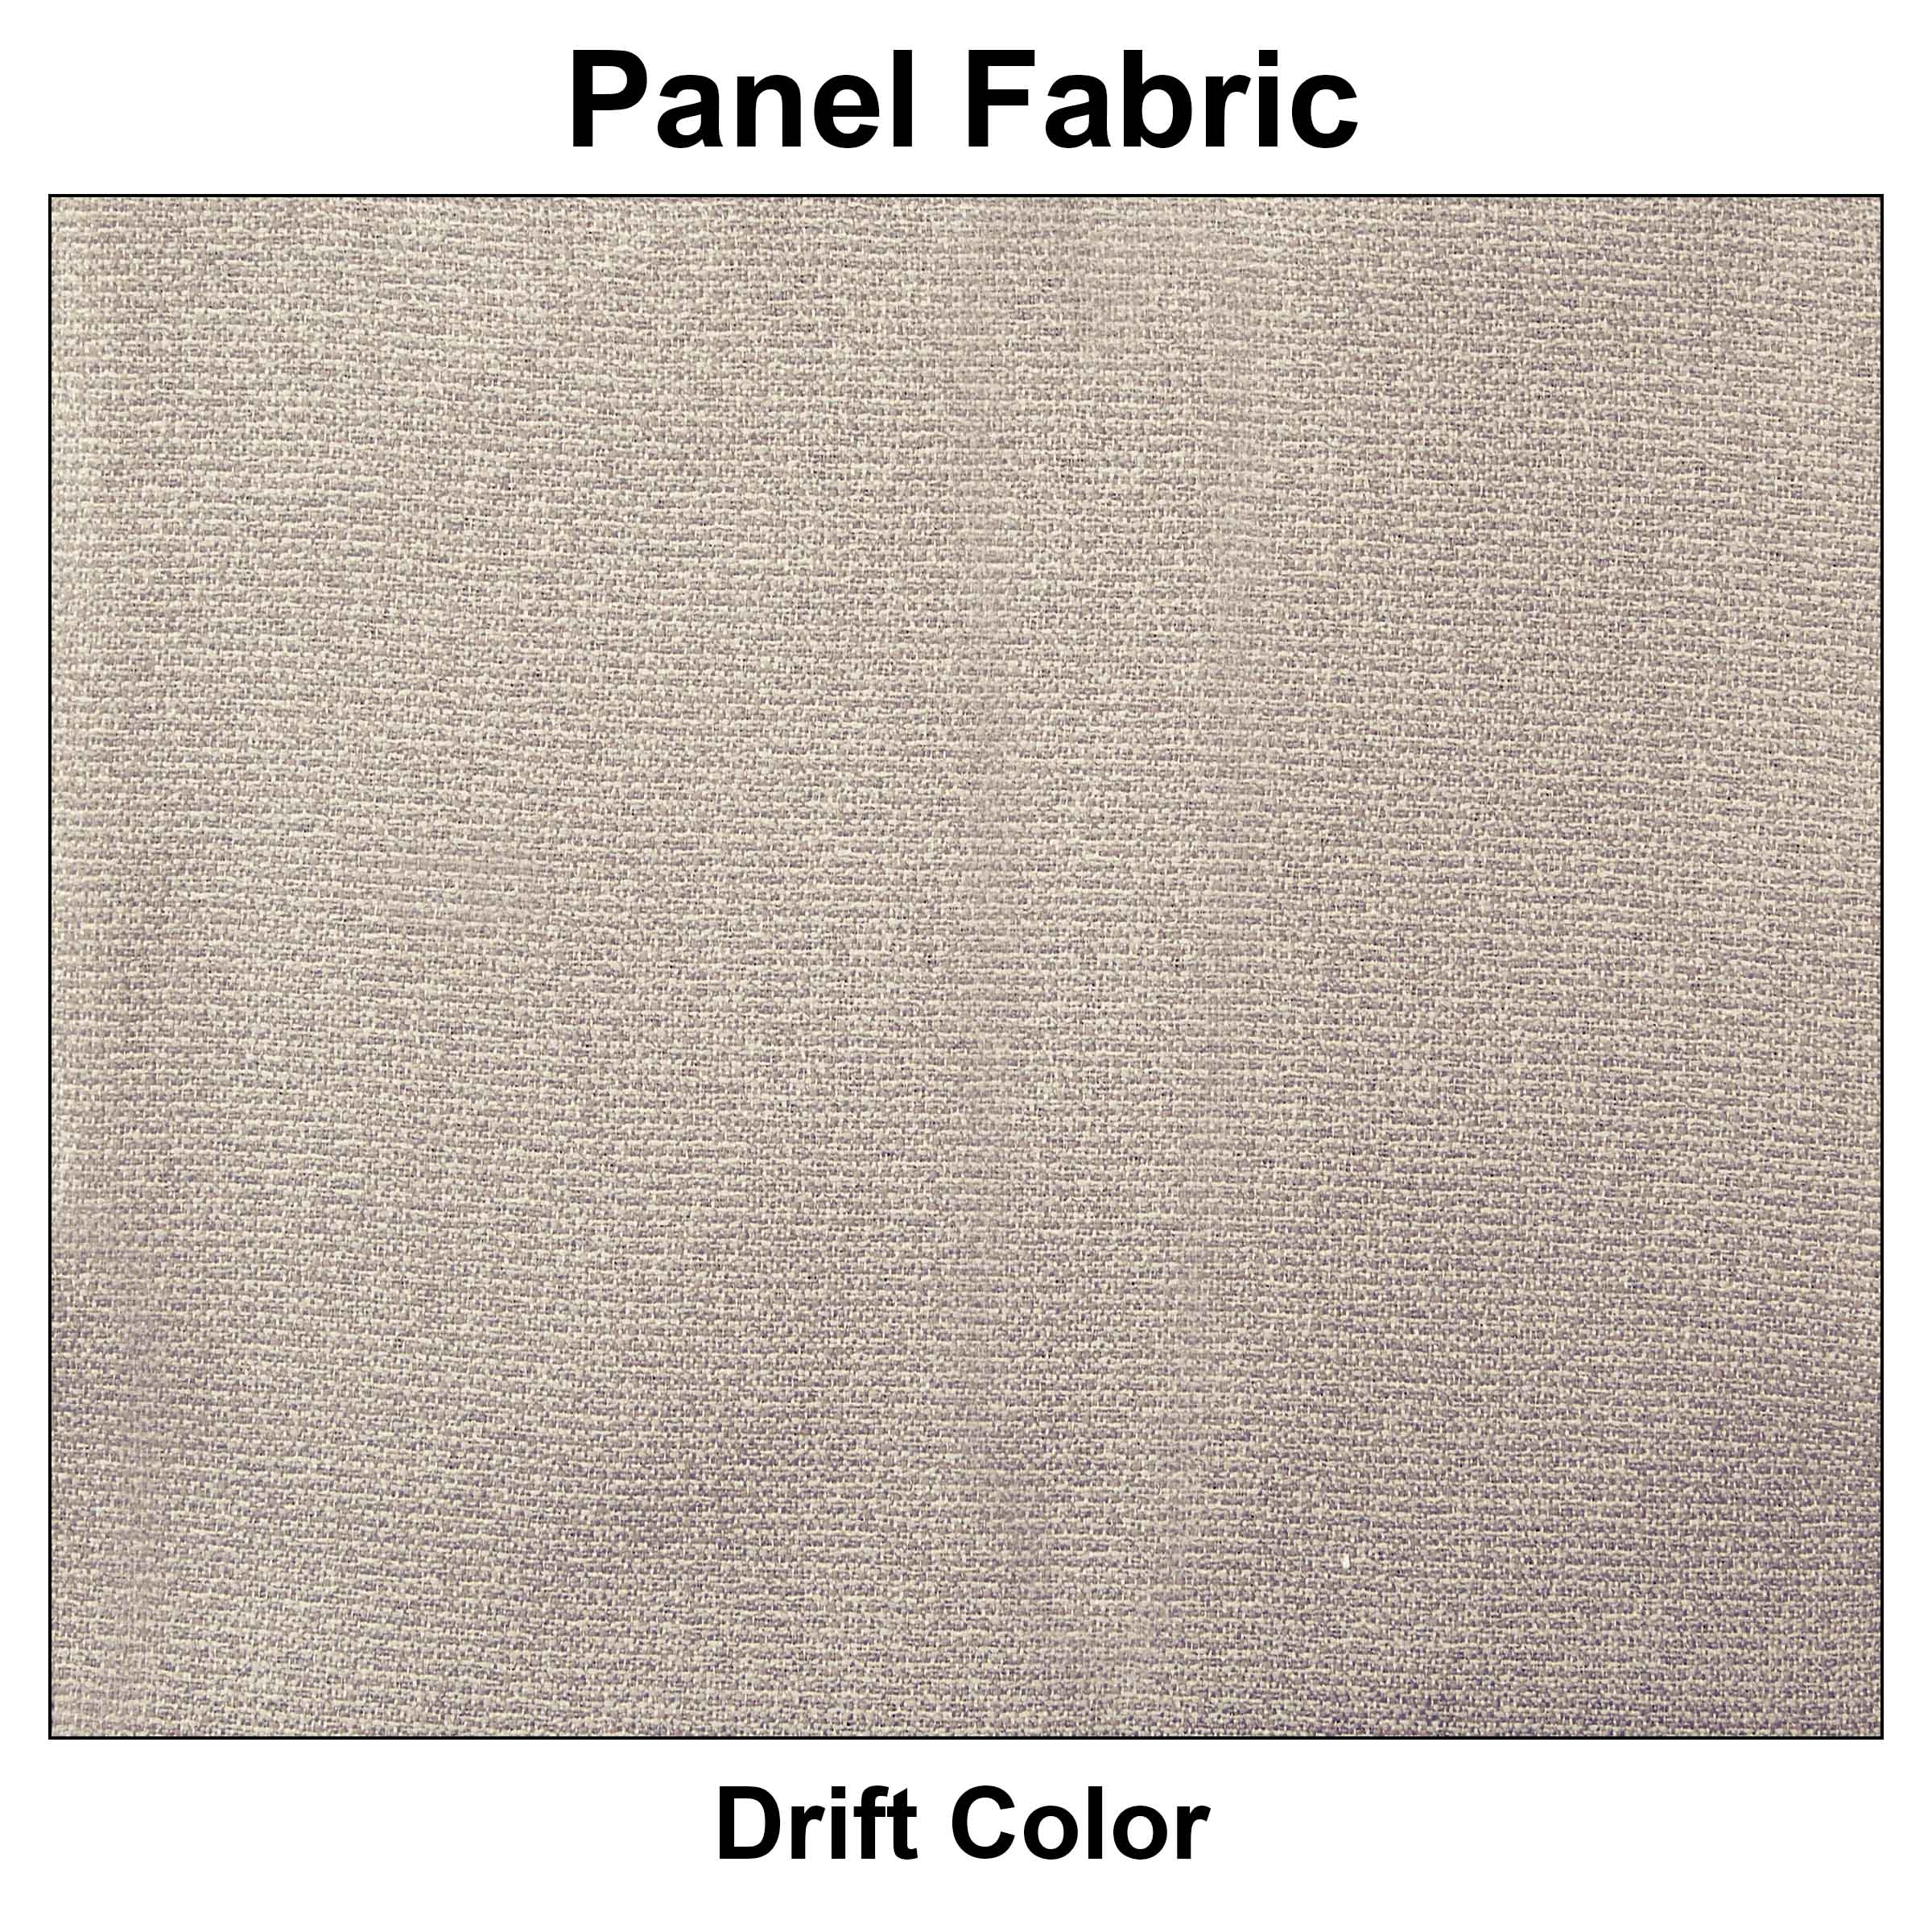 Modular office desk furniture fabric 1 2 3 4 5 6